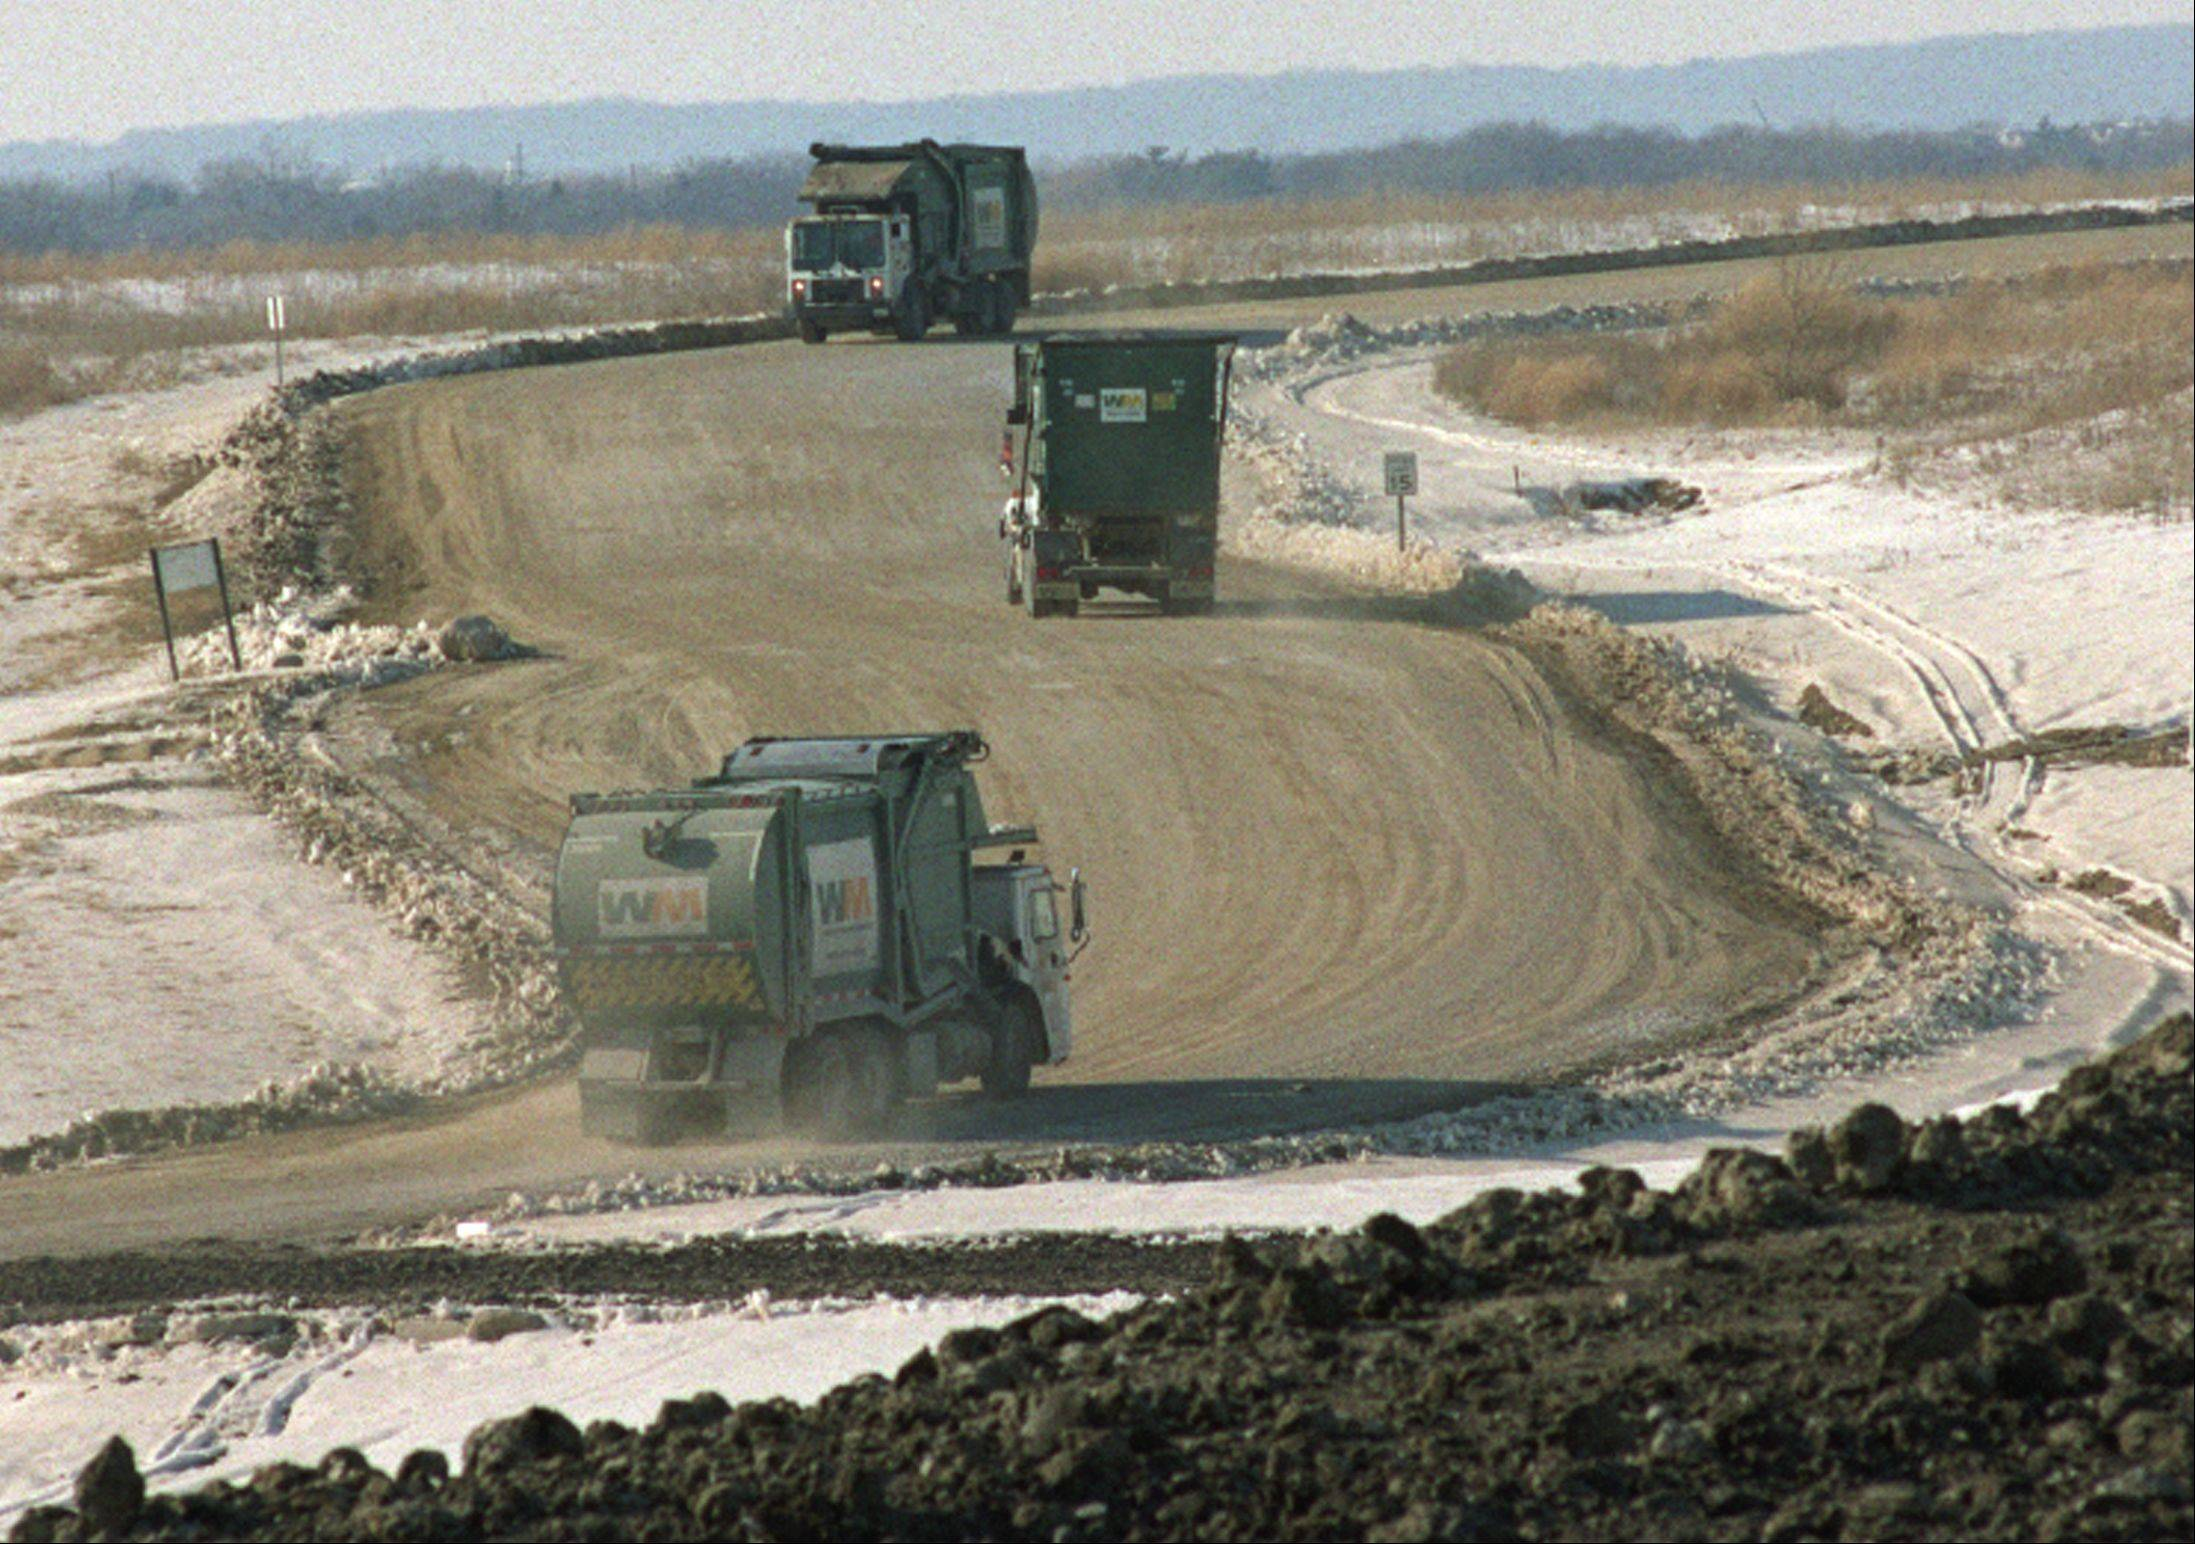 Settlers Hill is no stranger to seeing a high volume of truck traffic. In its days as an operational landfill, the facility hosted multiple Waste Management garbage trucks every day.